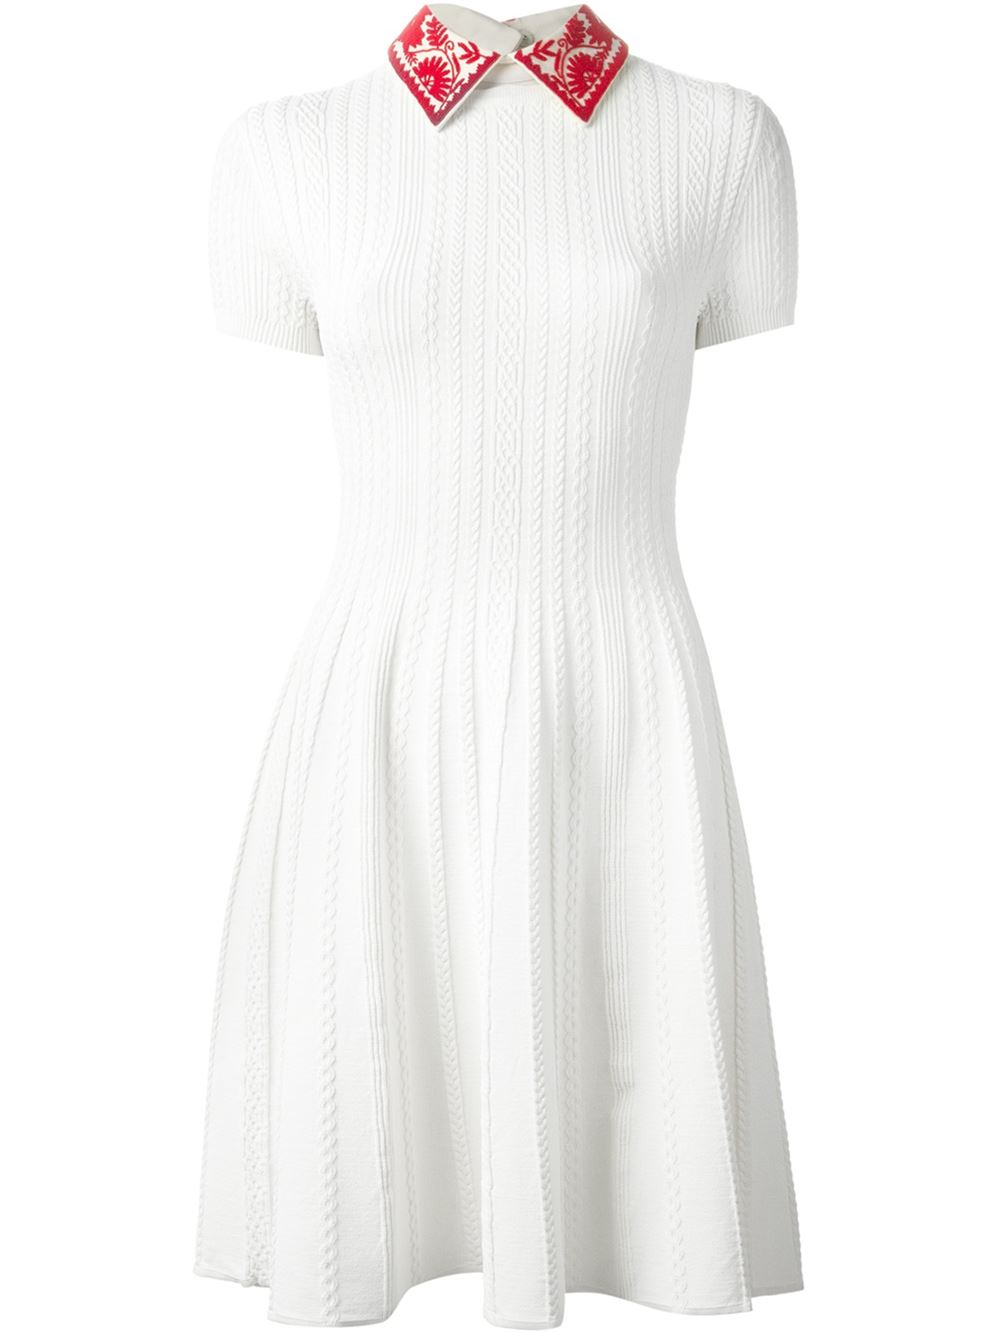 Valentino Woman Embellished Crepe-trimmed Cable-knit Dress Ivory Size L Valentino tJwVqZ5FR